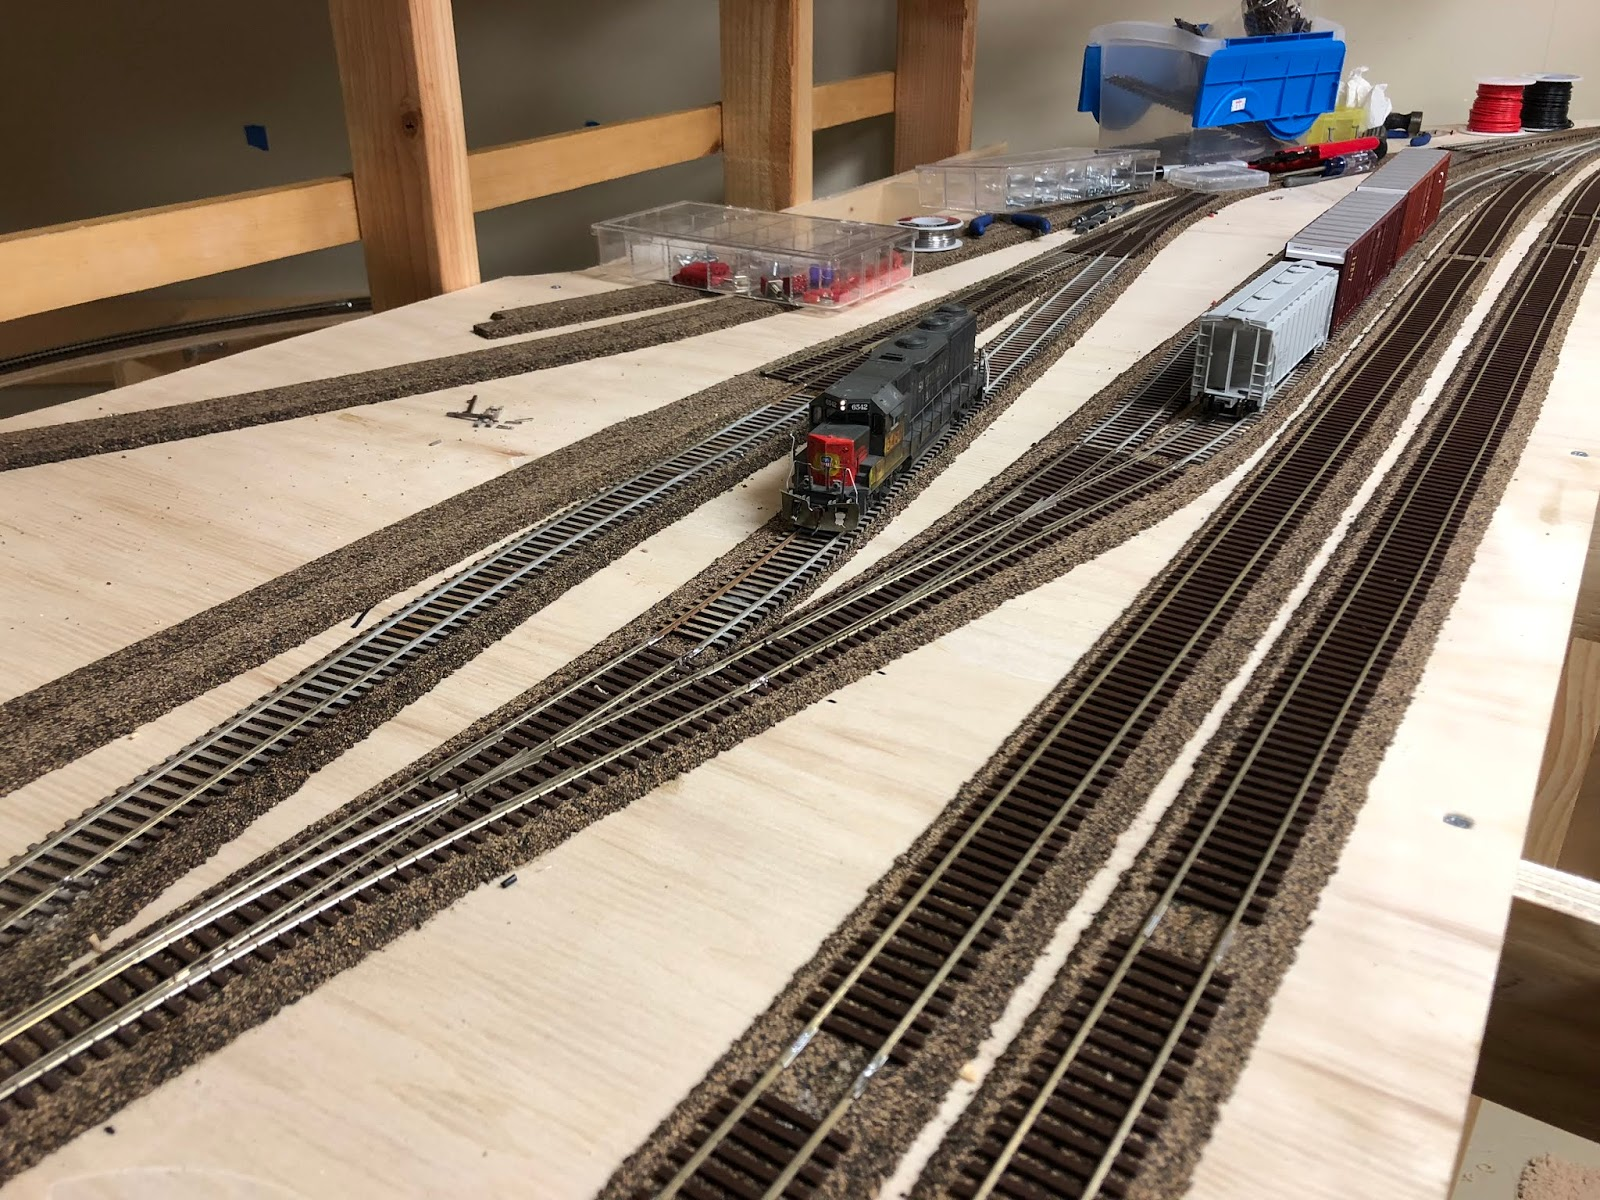 hight resolution of as i left it in the winter construction in oakridge was in progress after initial construction efforts of benchwork track and wiring